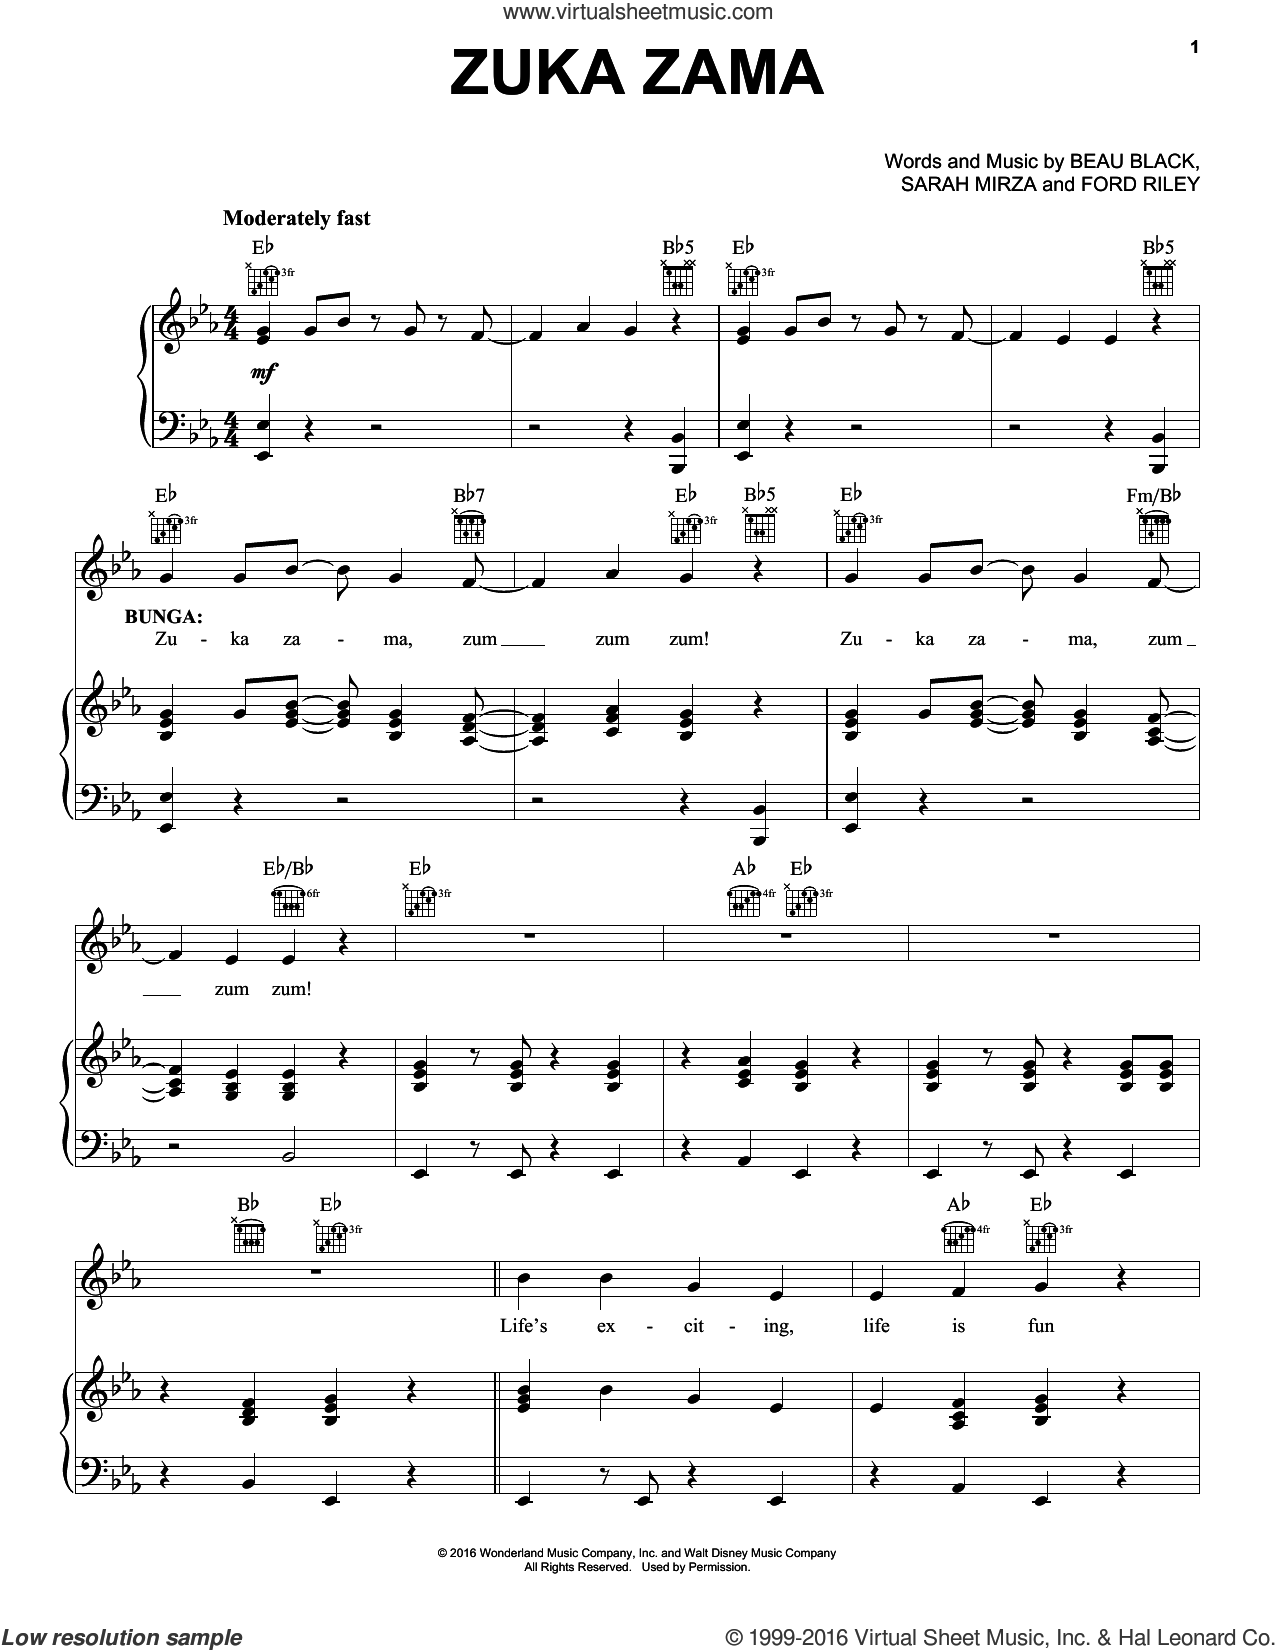 Zuka Zama sheet music for voice, piano or guitar by Sarah Mirza, Beau Black and Ford Riley. Score Image Preview.